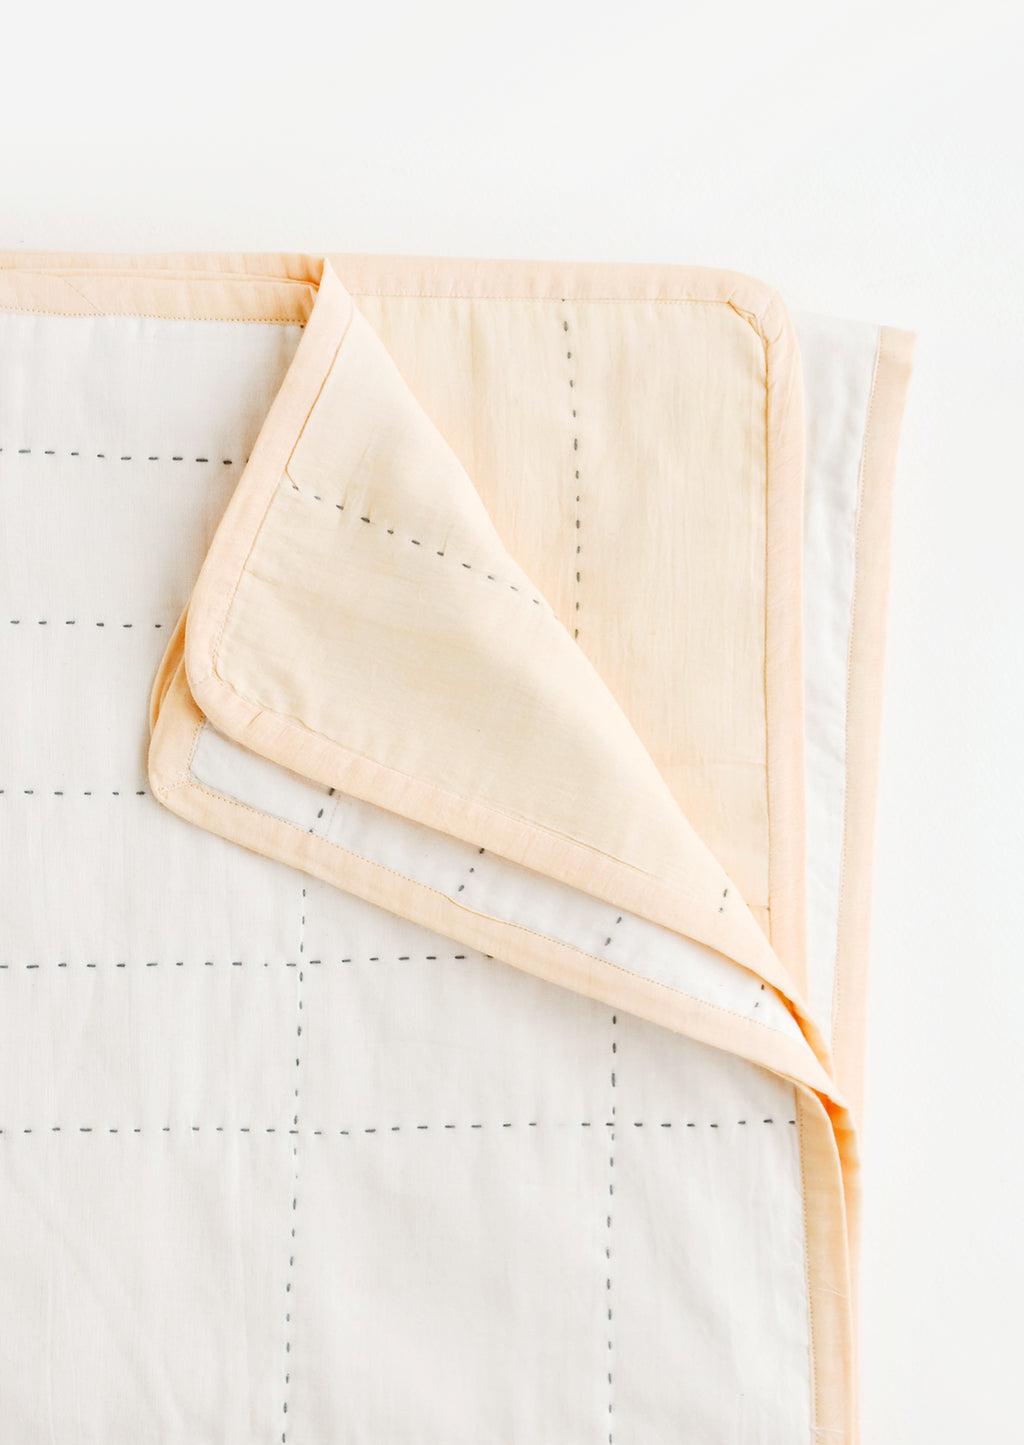 Peach: Reversible organic cotton quilt with embroidered grid pattern in peach and ivory with black stitching